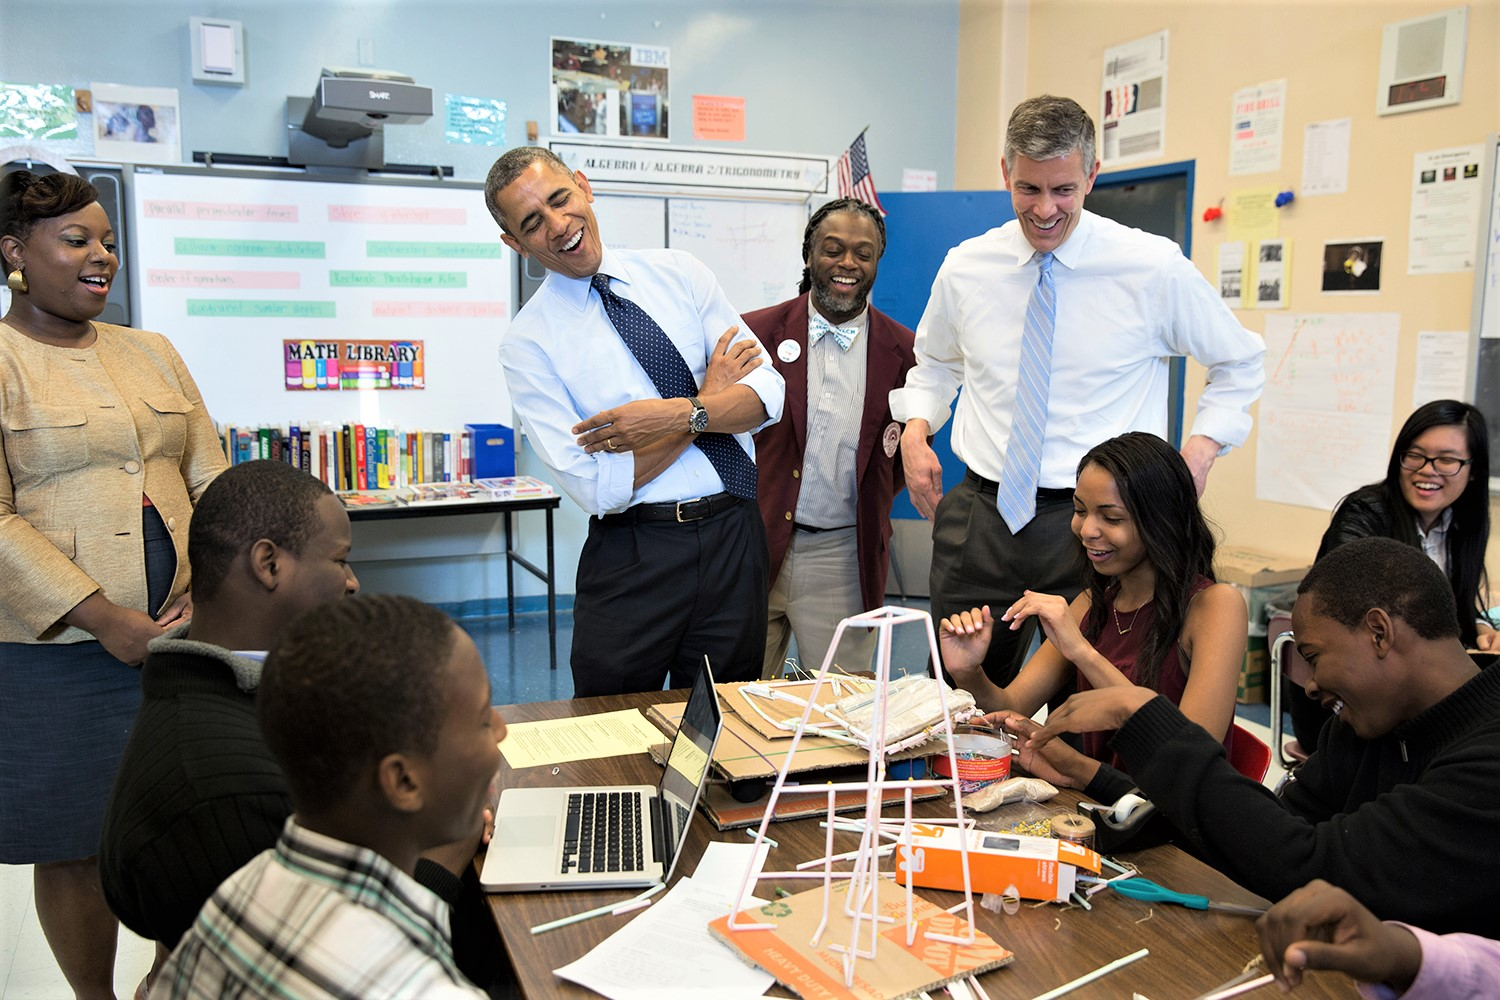 President Barack Obama and Education Secretary Arne Duncan visit a classroom at the Pathways in Technology Early College High School (P-TECH) in Brooklyn, N.Y., Oct. 25, 2013. (Official White House Photo by Pete Souza)